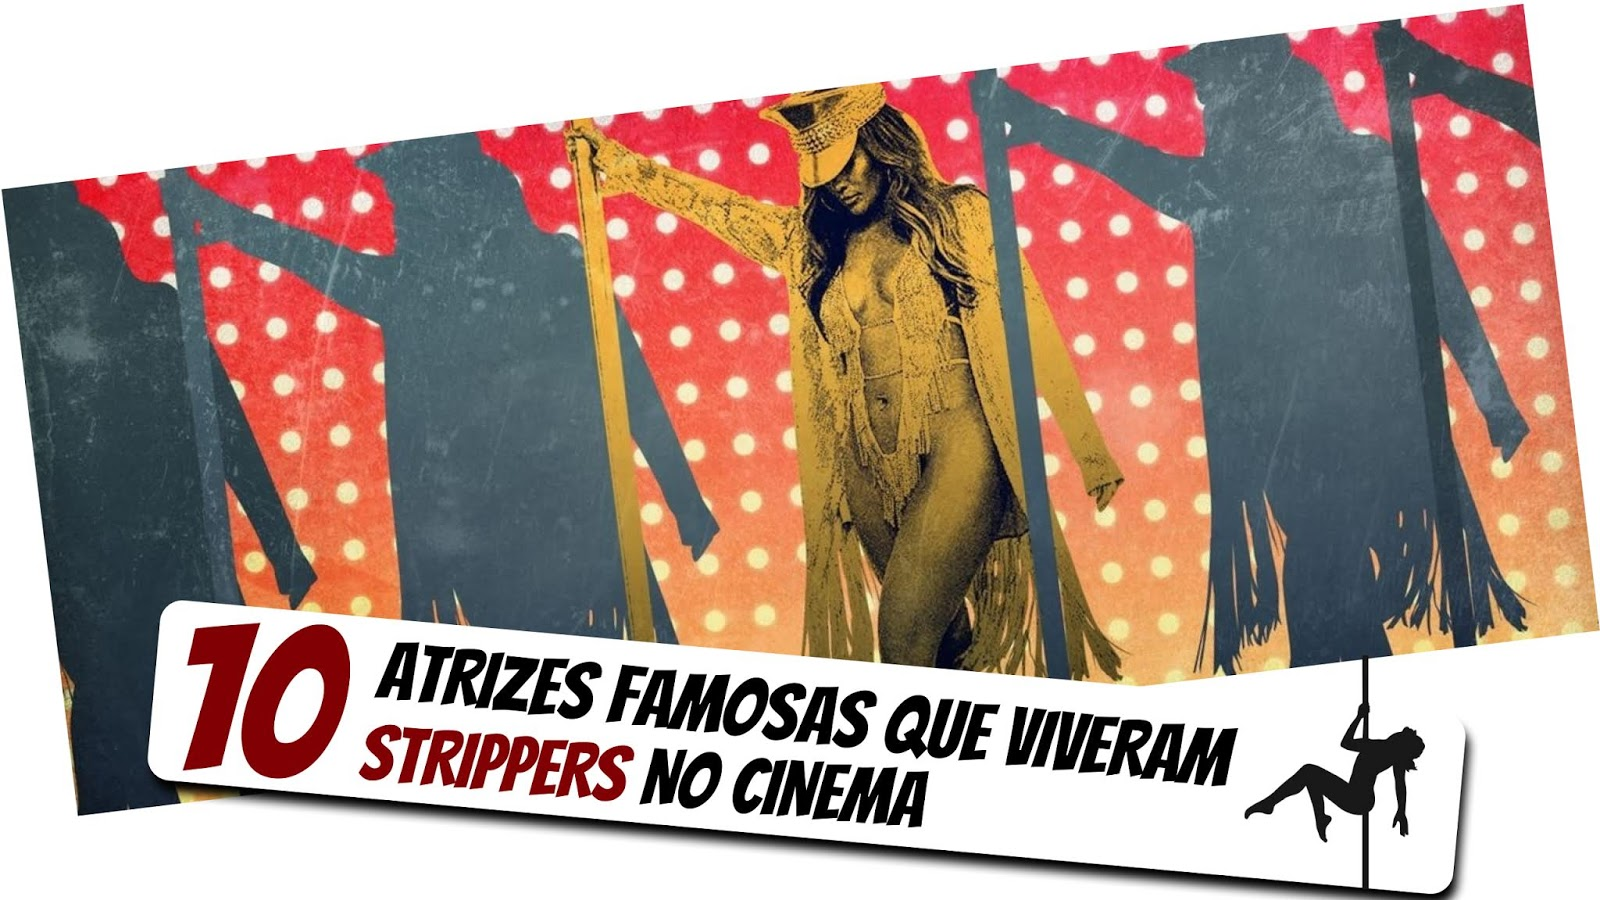 10-atrizes-famosas-strippers-no-cinema